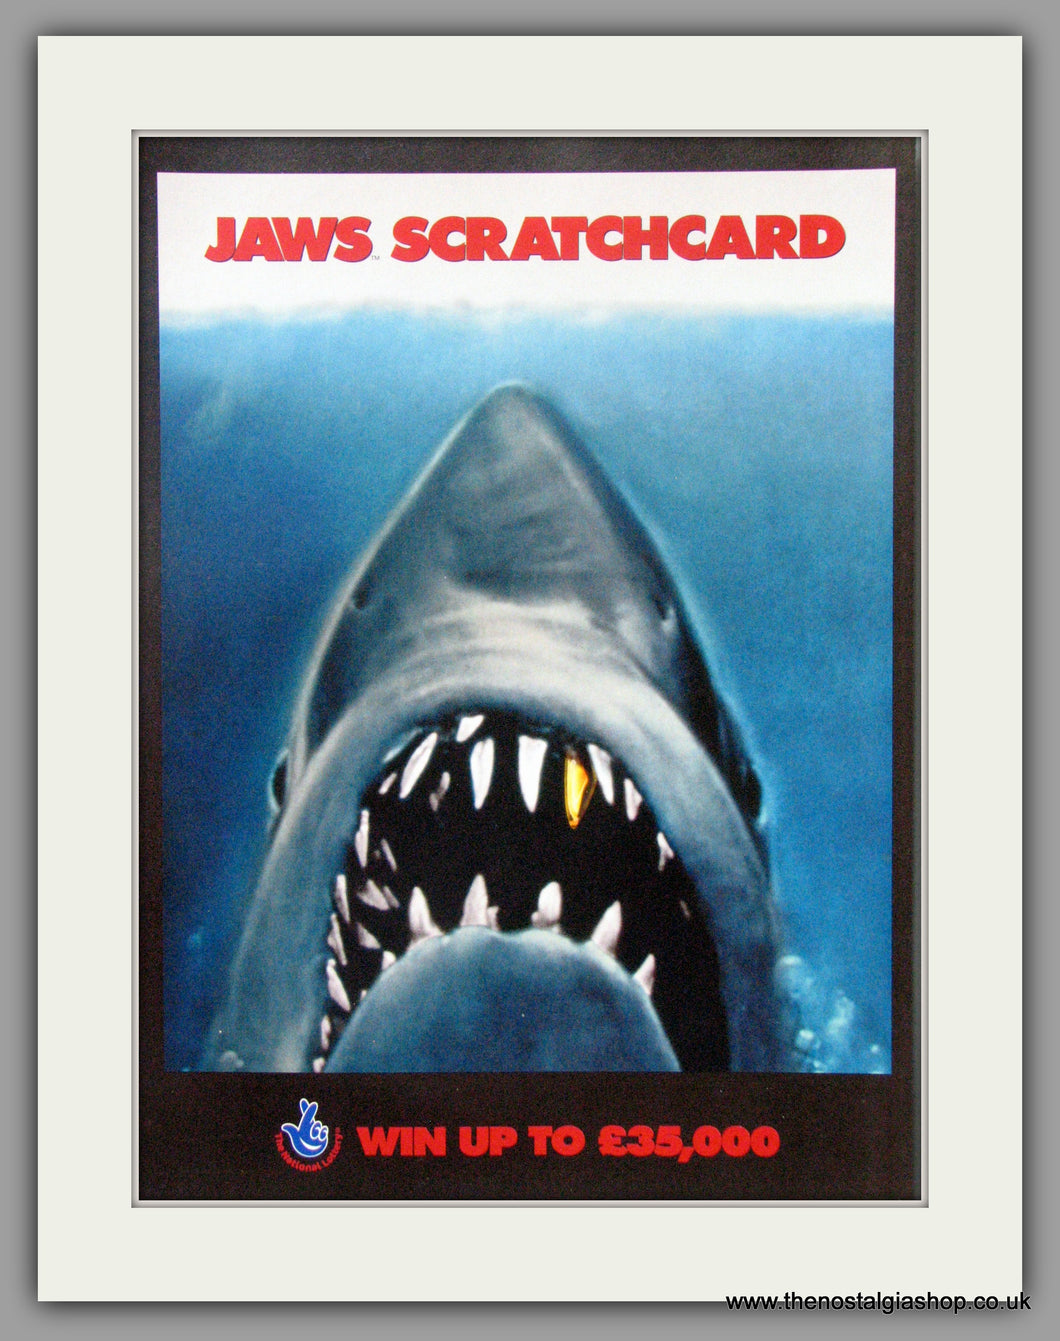 Jaws Scratchcard. Original Advert 2004 (ref AD50943)